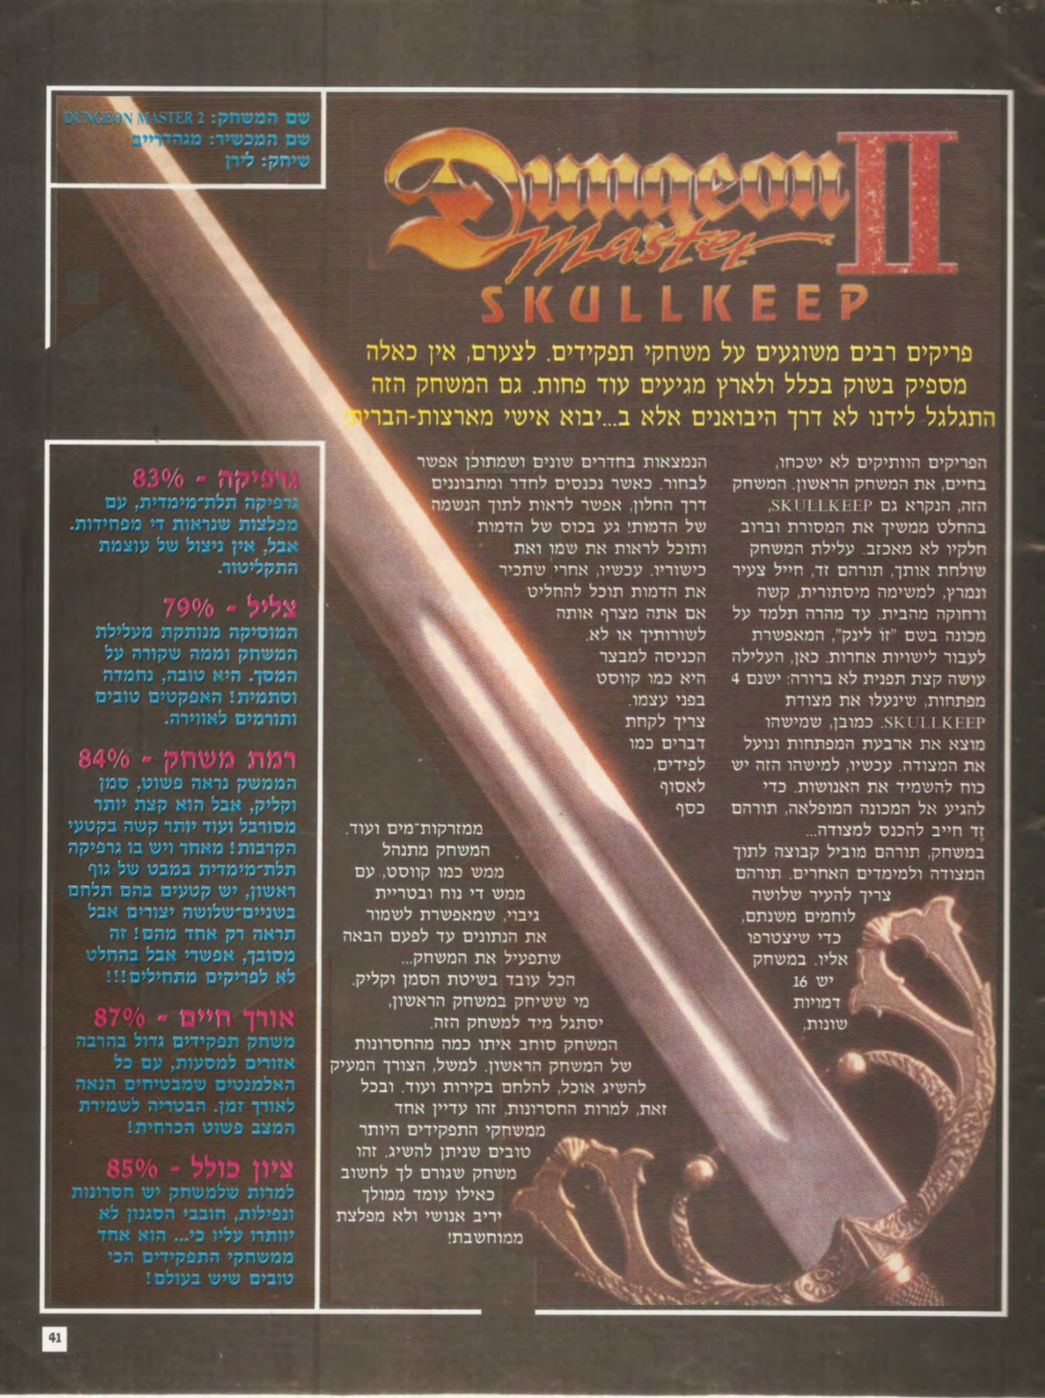 Dungeon Master II for Mega CD Review published in Israelian magazine 'Freak', Issue #25 November 1994, Page 41